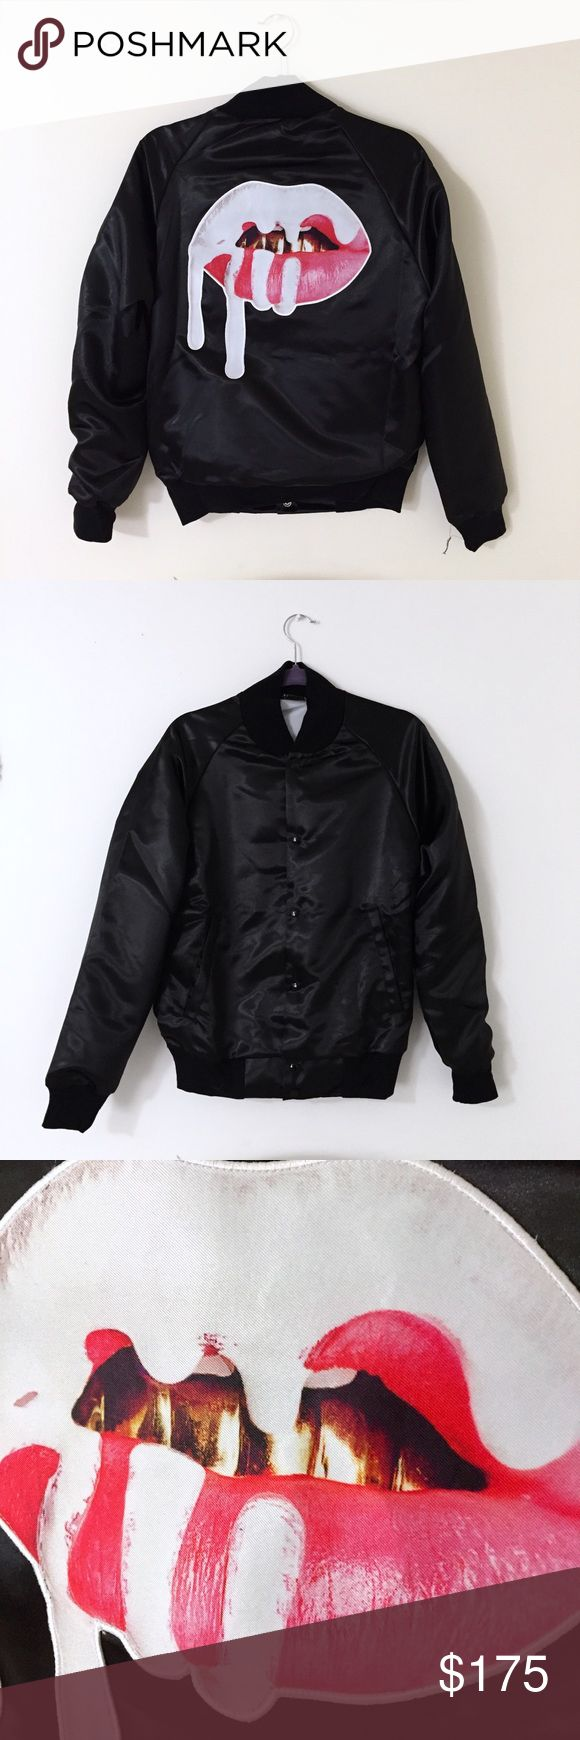 """Kylie's """"Lip Satin Bomber Jacket"""" (Black) This never worn jacket accompanied by a pair of """"Kylie X Arthur George"""" socks can be yours.                                      (In order to photograph the jacket, I had to remove it from the bag it came in. It did not come with any tags, however it was ordered directly from The Official Kylie Jenner Shop.) Kylie Jackets & Coats"""